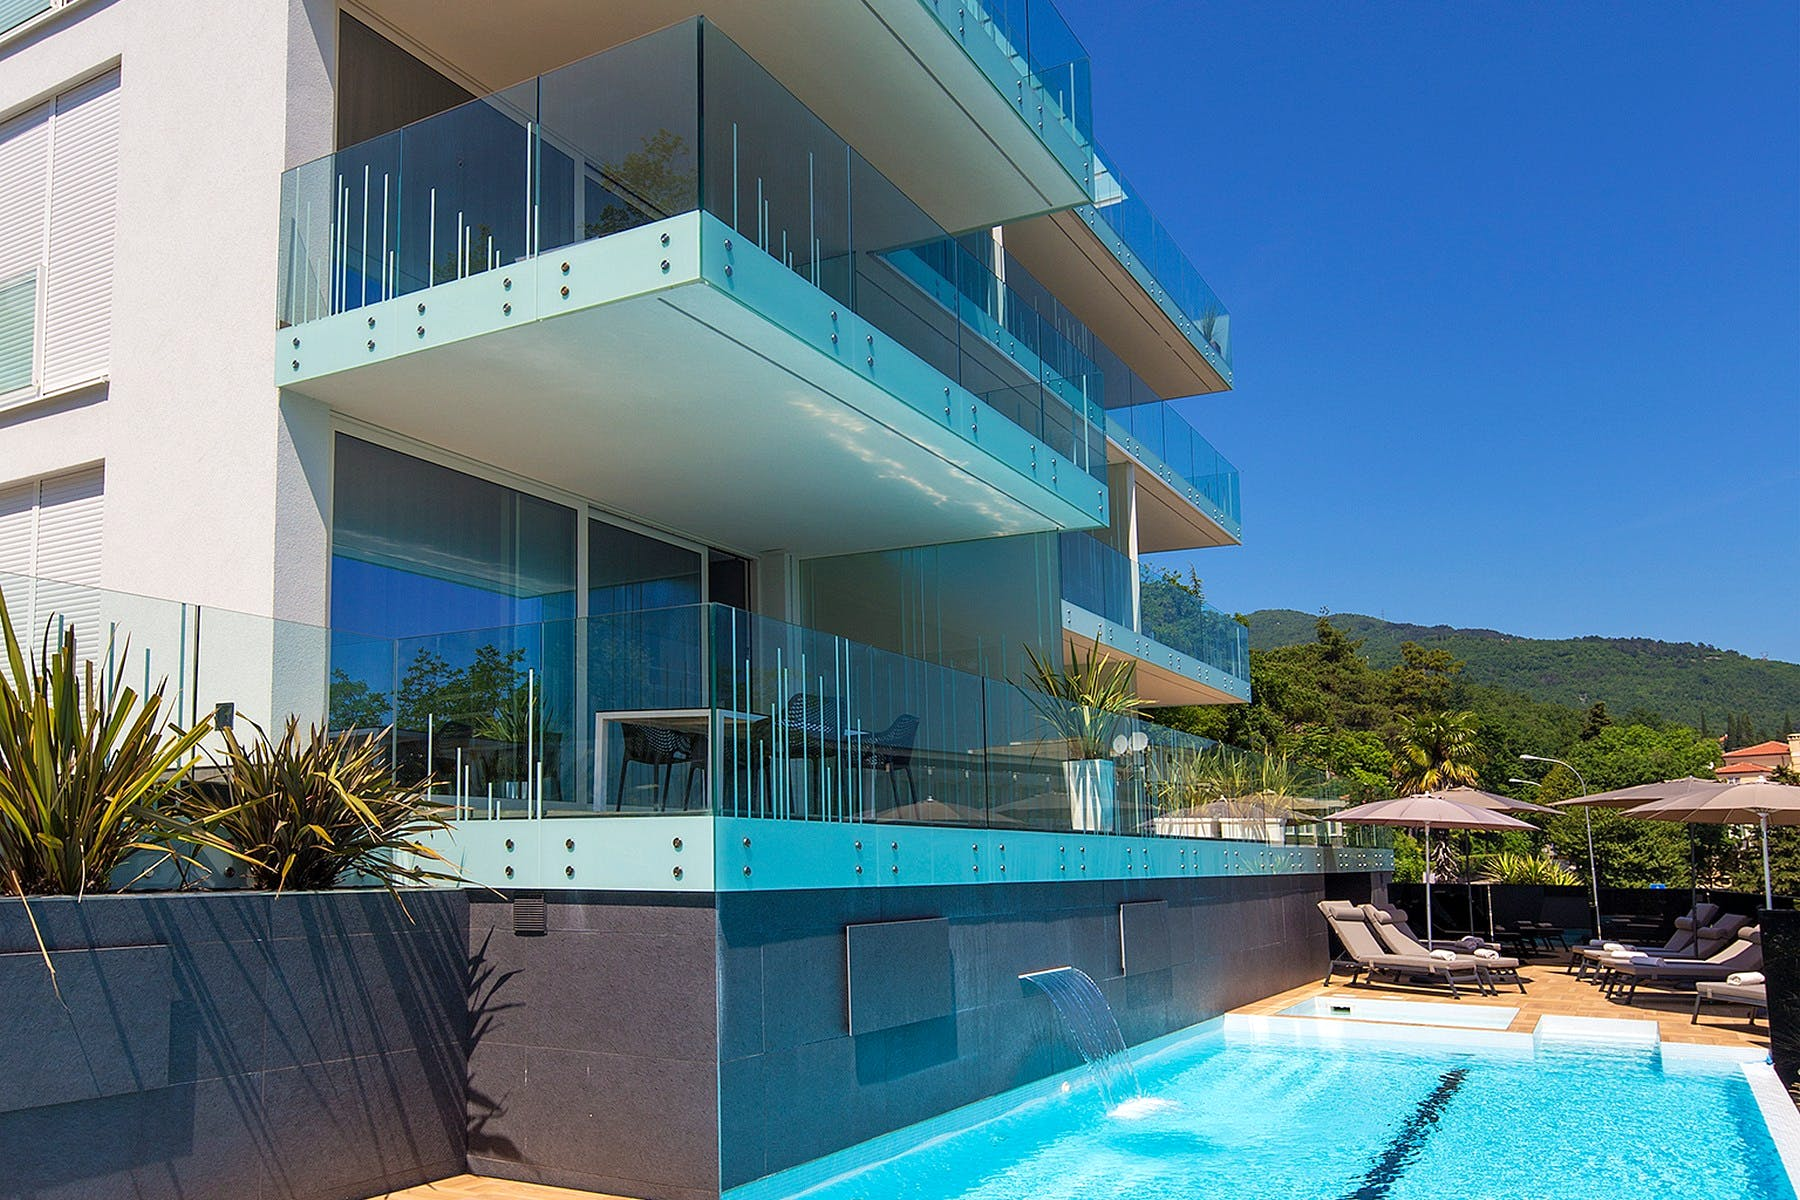 Contemporary building of clean lines with swimming pool